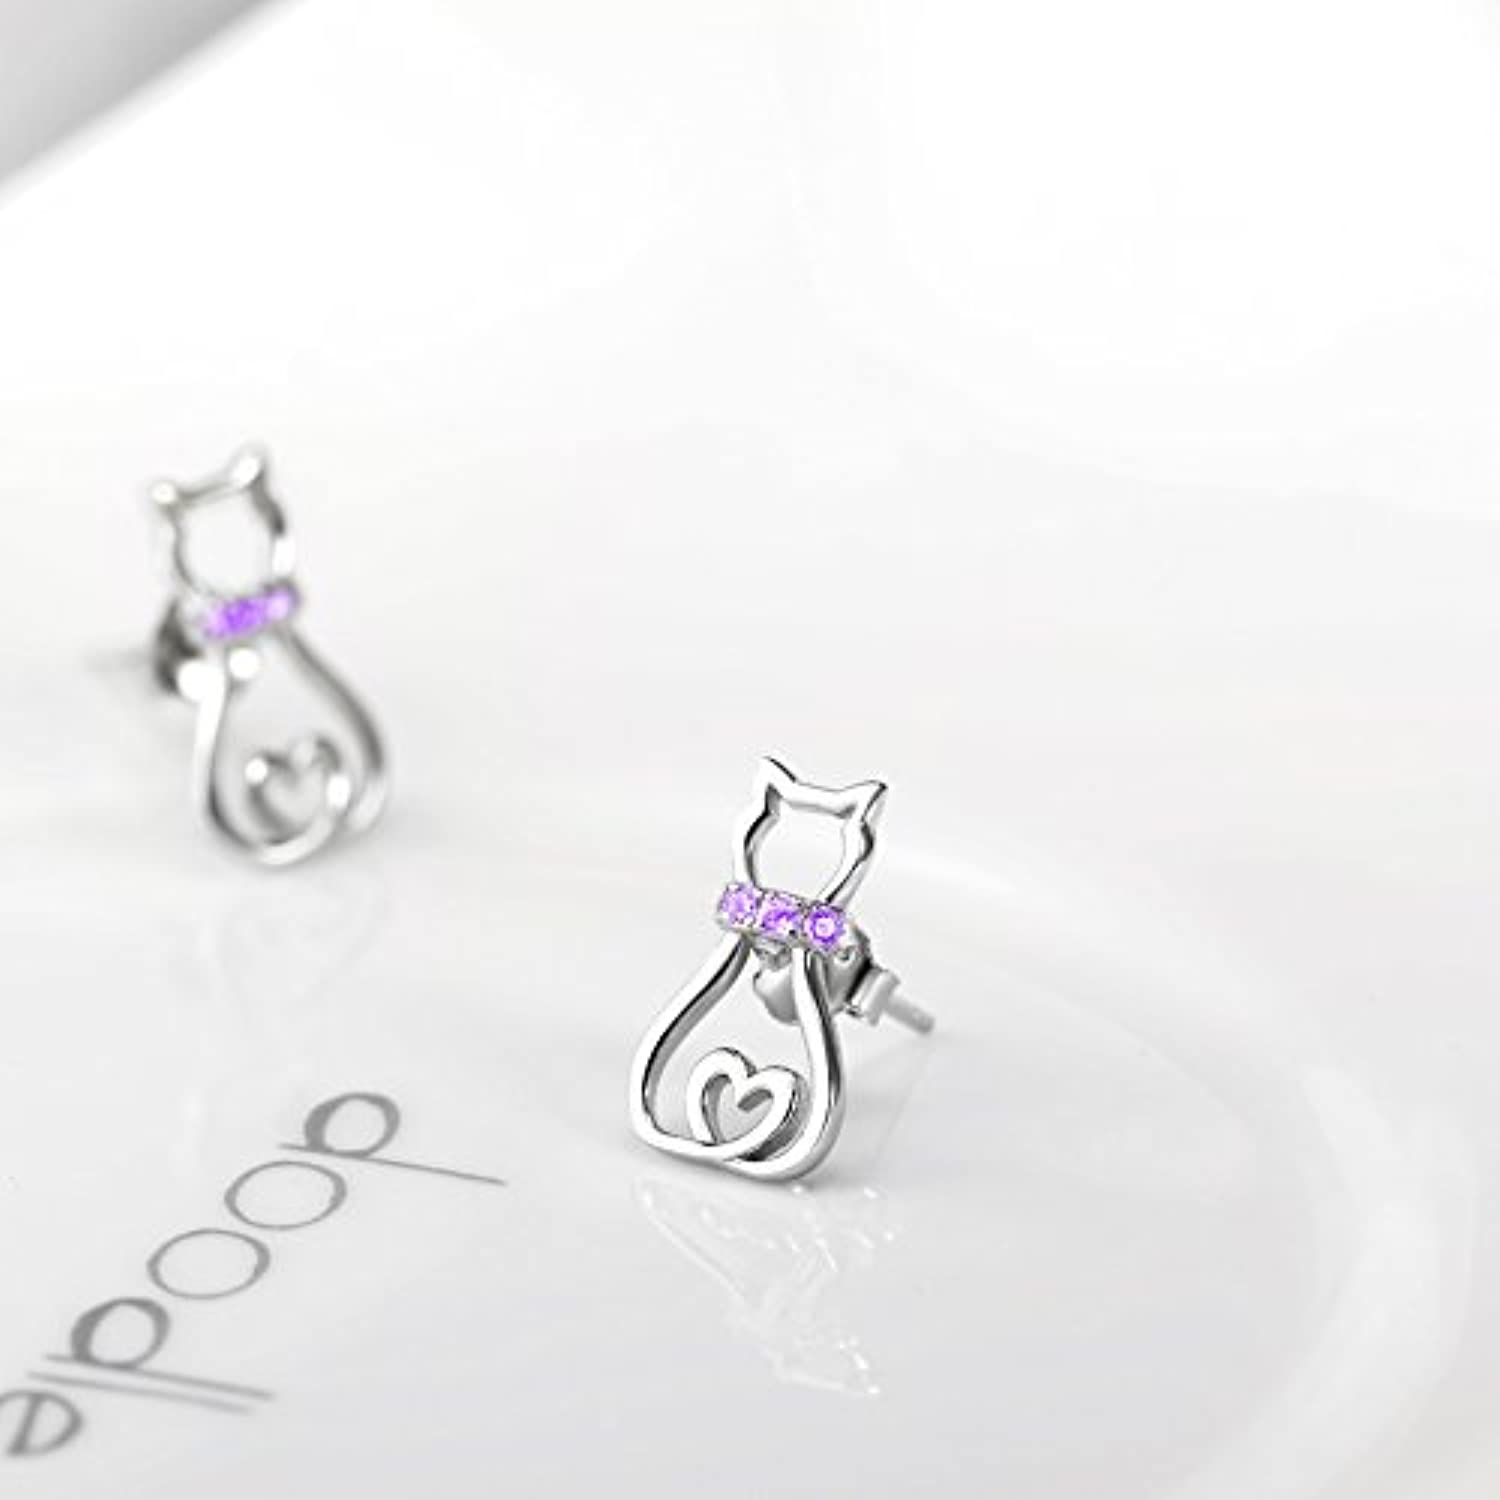 Cat Stud Earrings for Women Girls Sterling Silver Mini Pet Cats Earrings Jewelry Studs